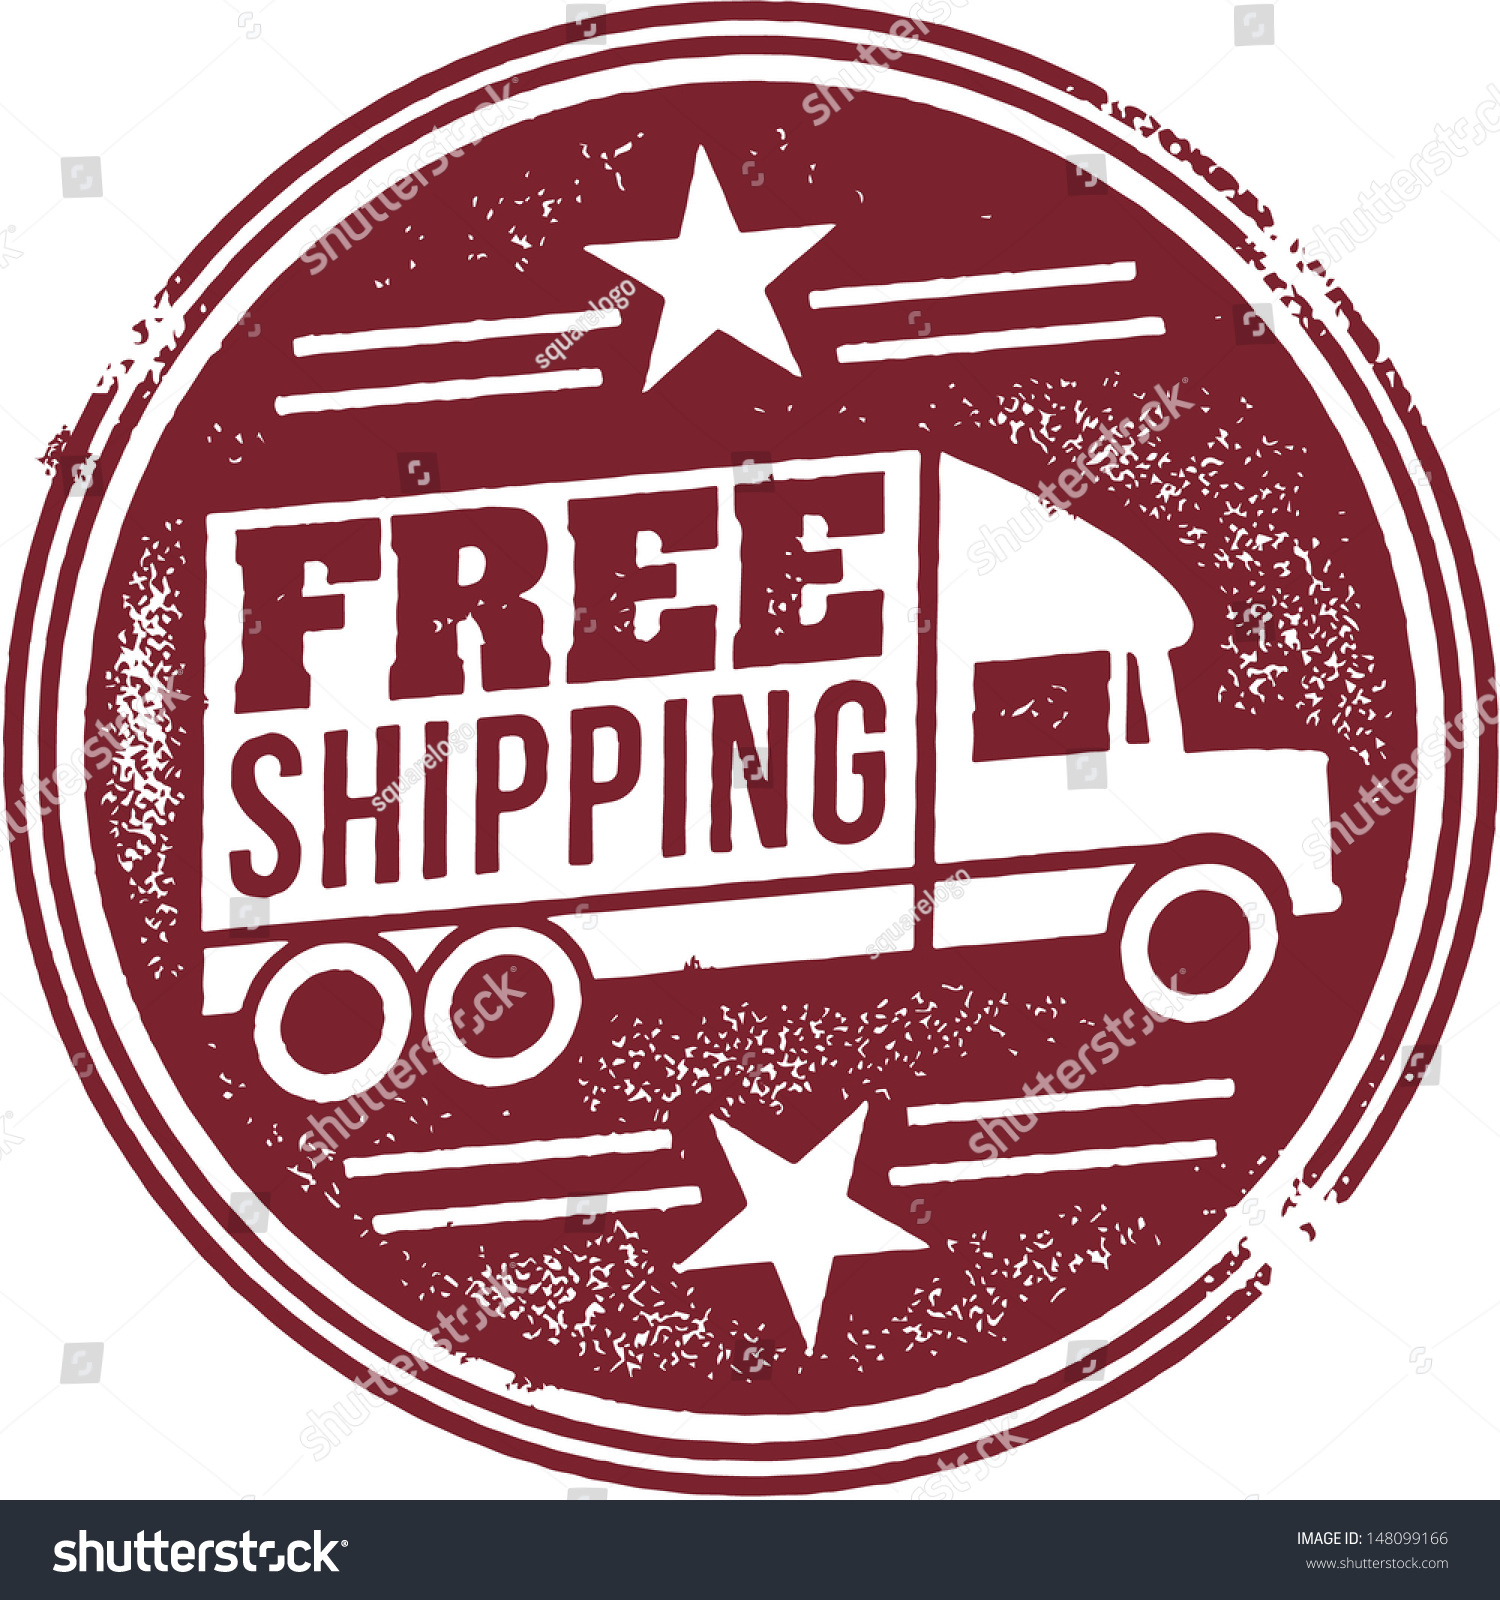 Image result for Free shipping images